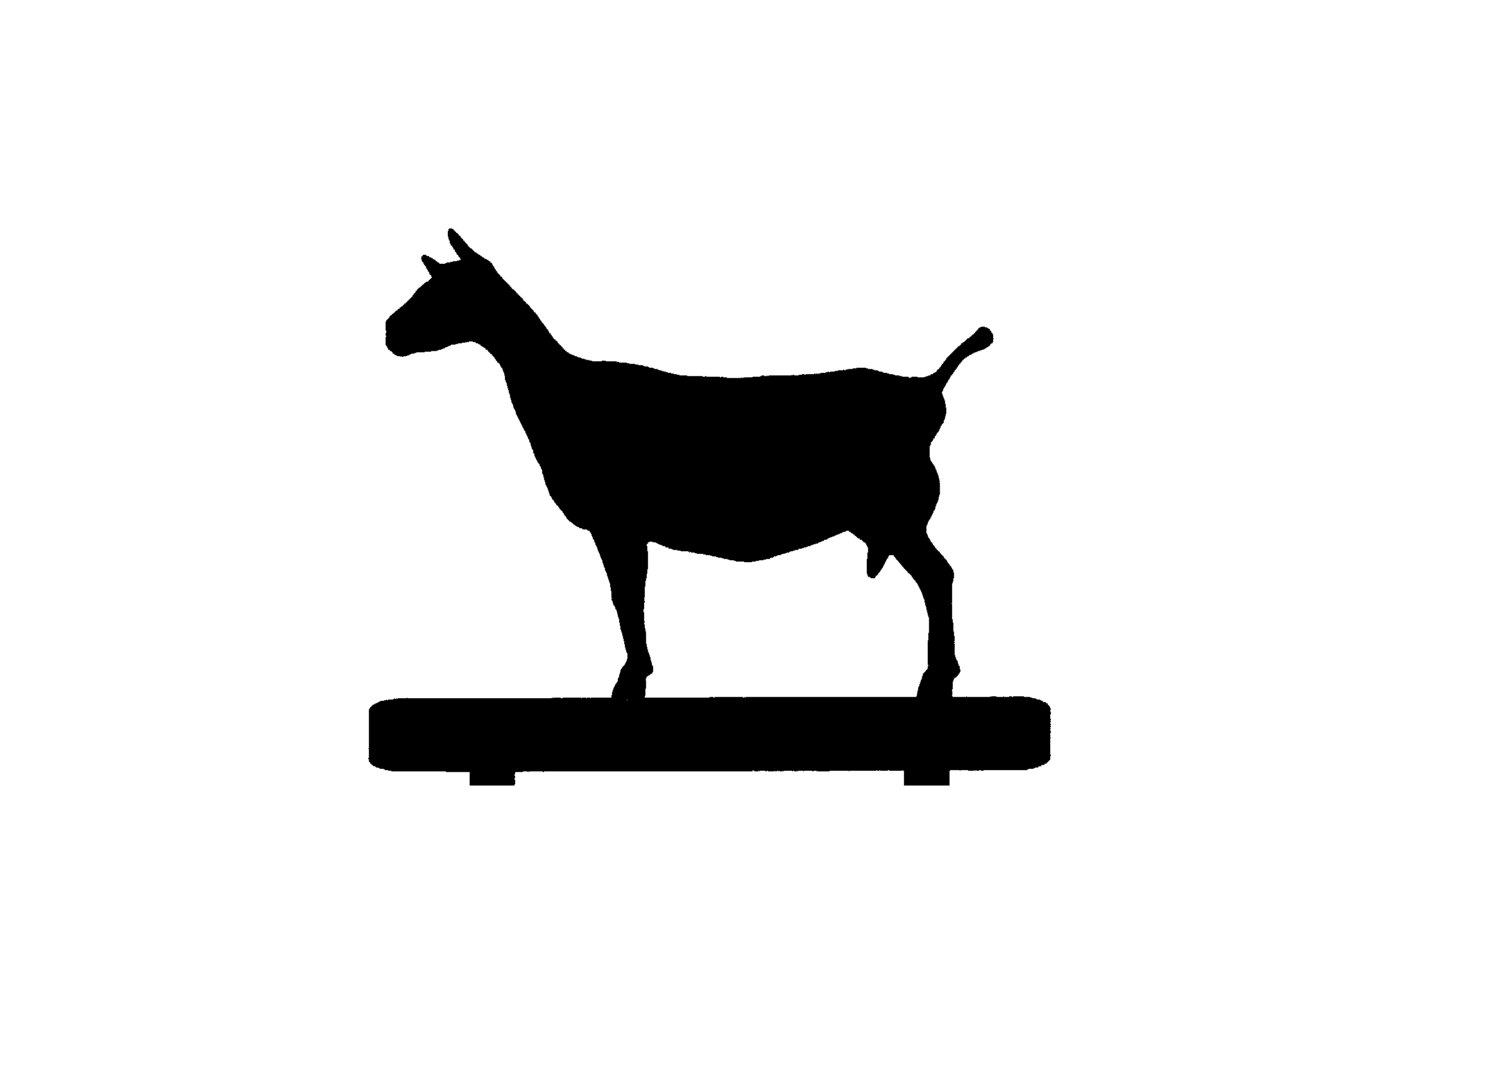 Goat clipart nigerian dwarf goat. Nubian silhouette at getdrawings